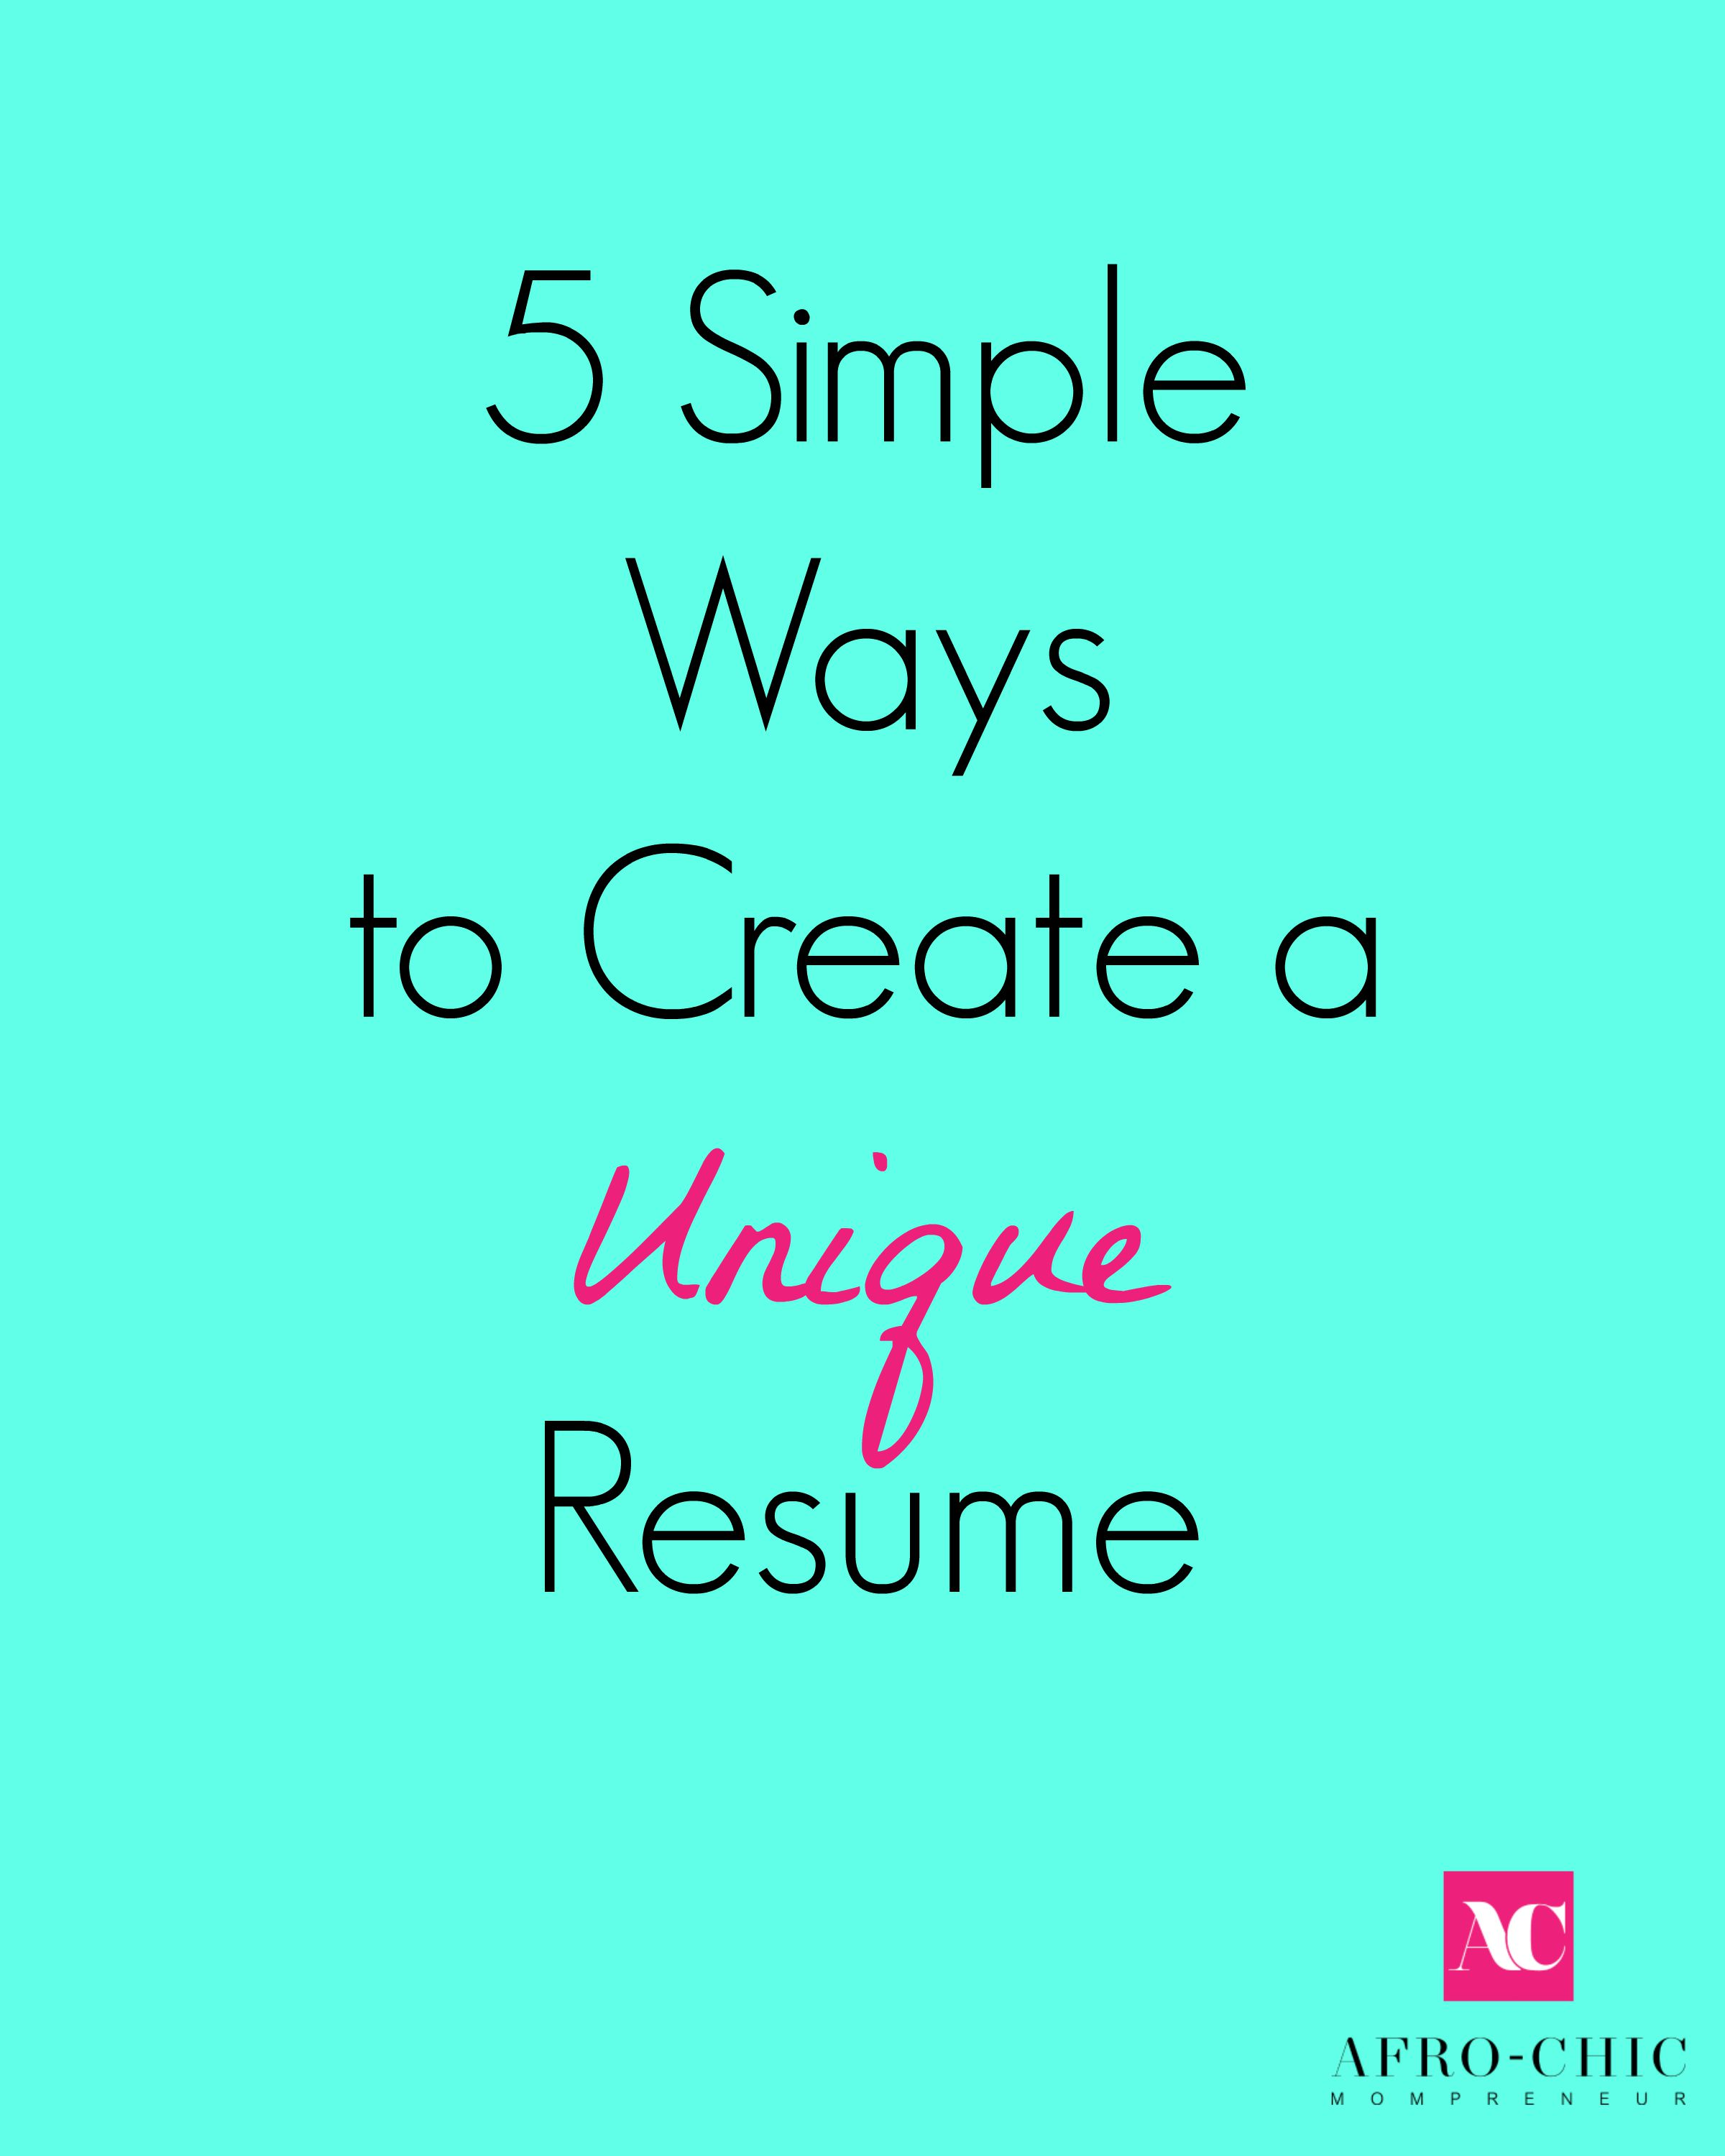 5 simple ways to create a unique resume the huffington post 2015 08 14 1439555868 4365440 resumeshoppe jpg